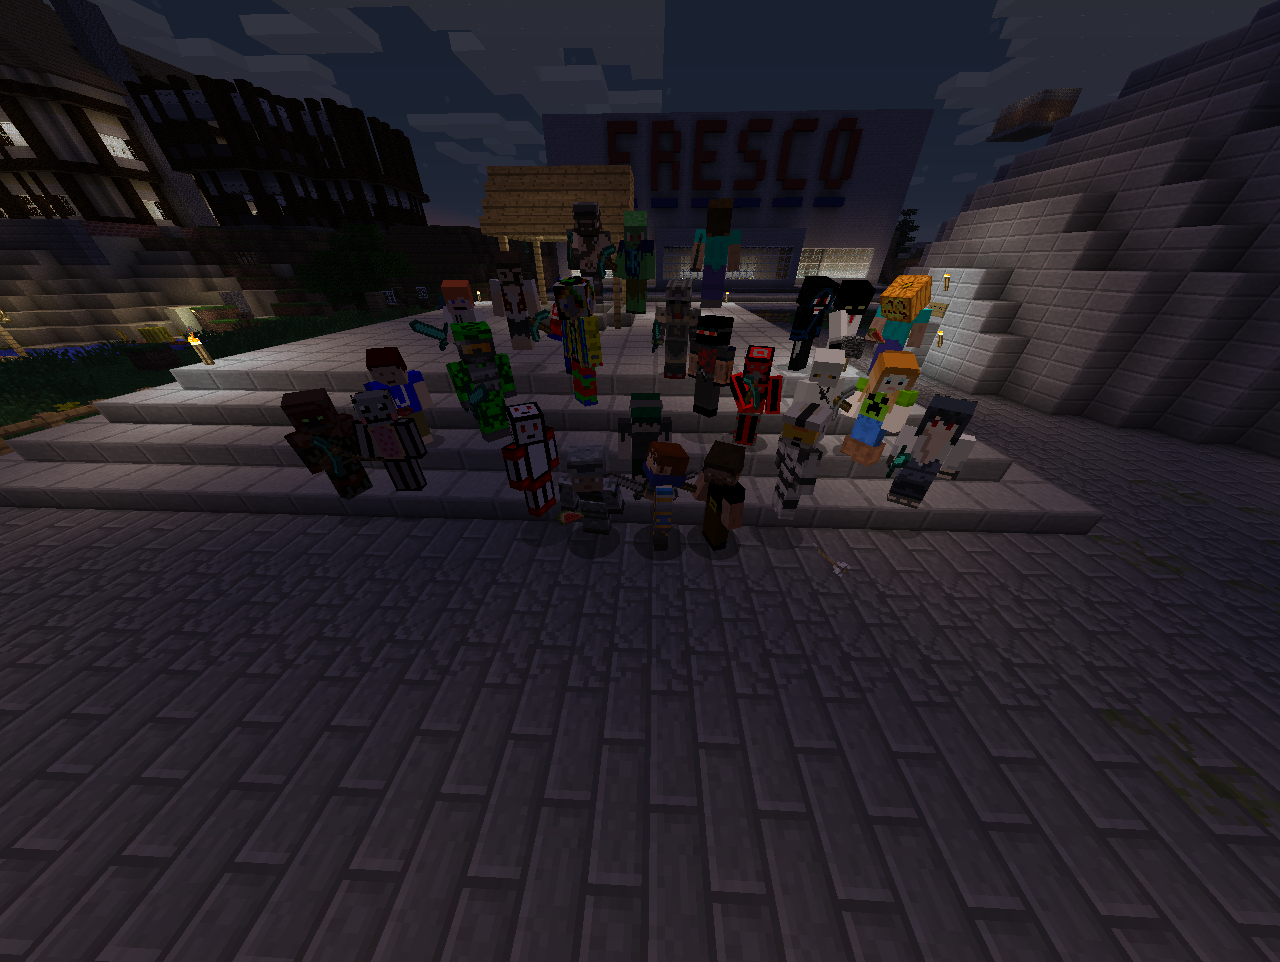 More people from minecraft